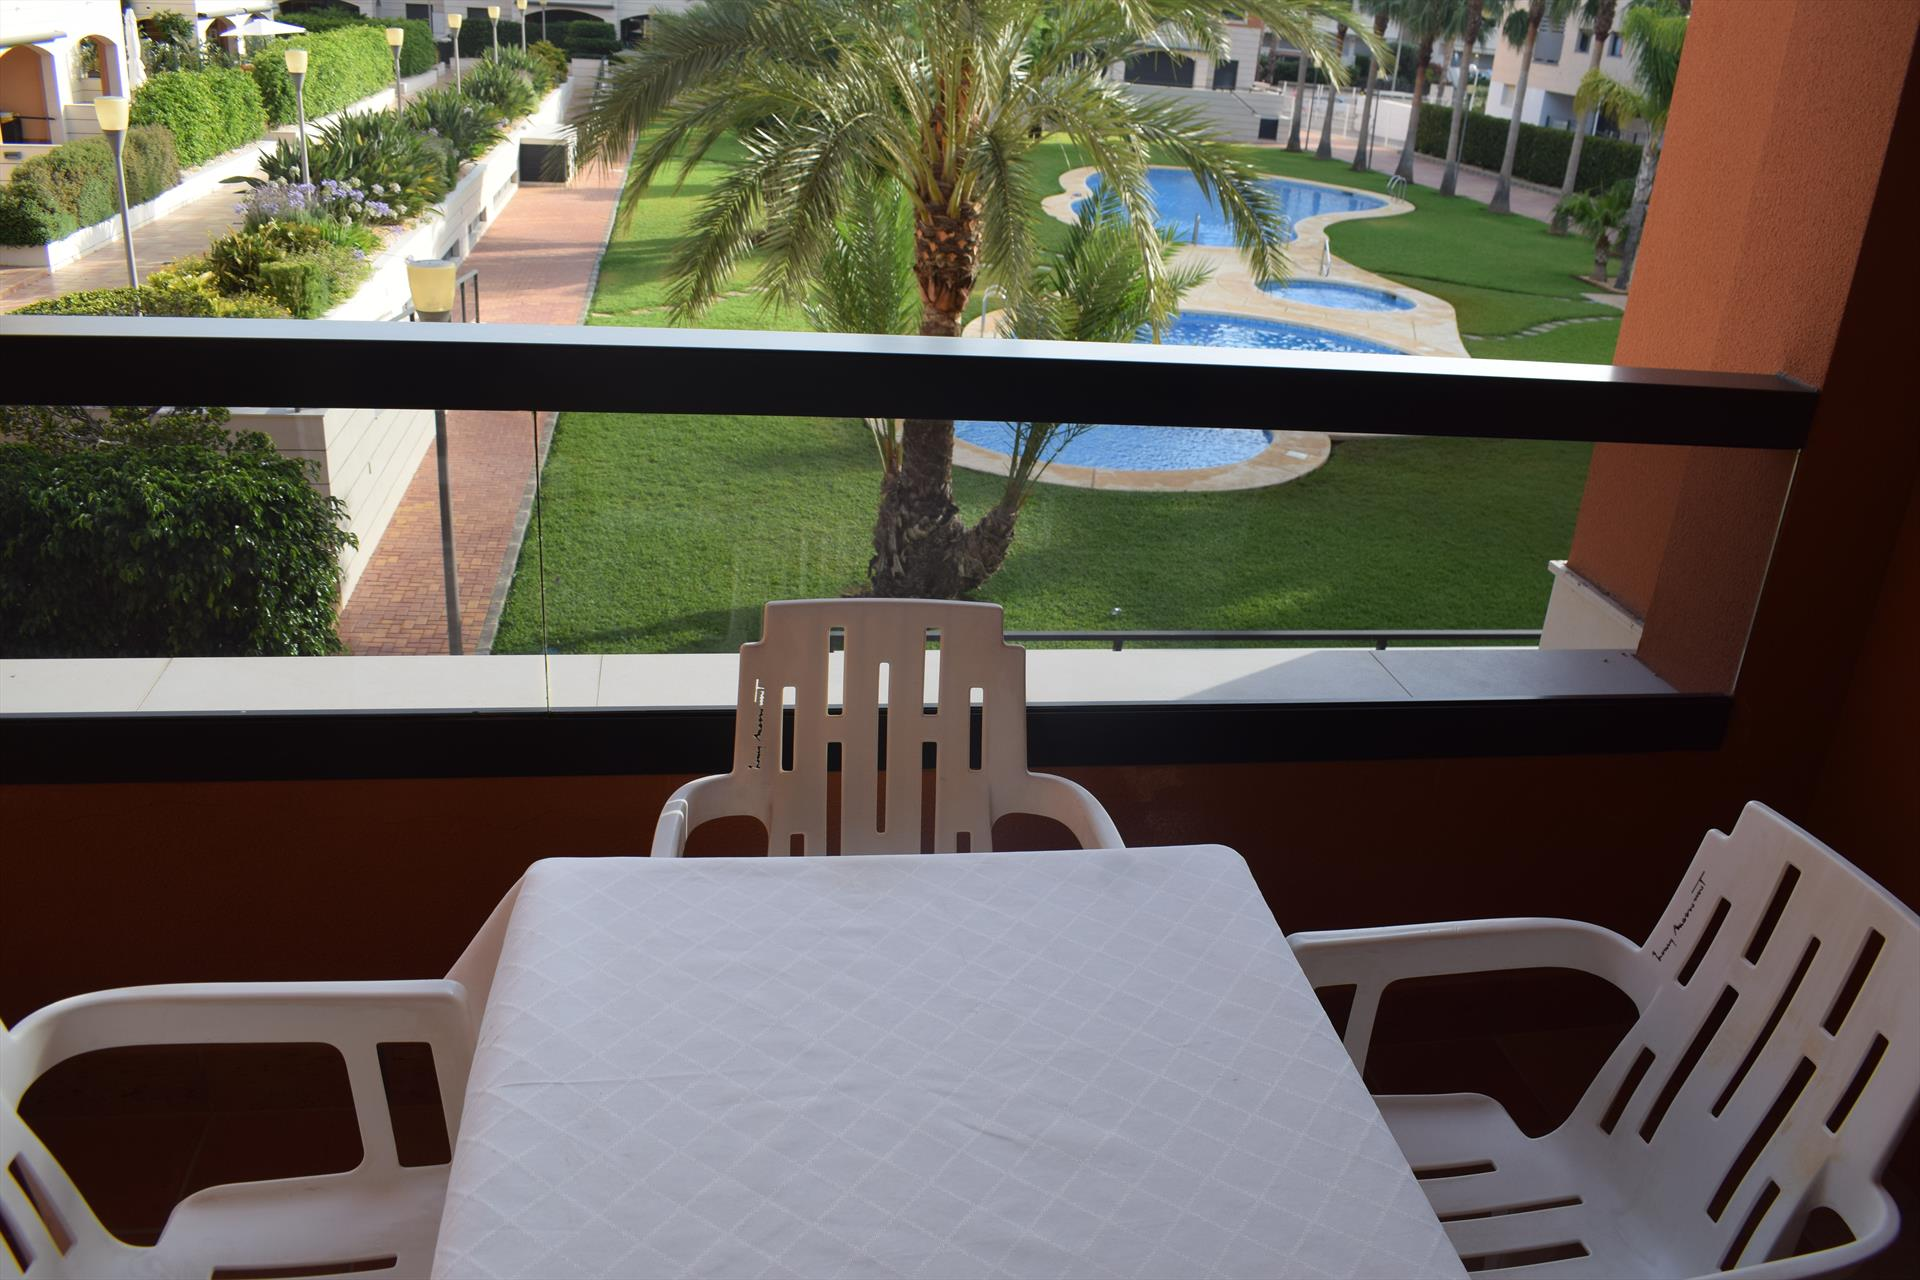 Jardines de la Marinas AP1114,Modern and comfortable apartment  with communal pool in Denia, on the Costa Blanca, Spain for 3 persons.....